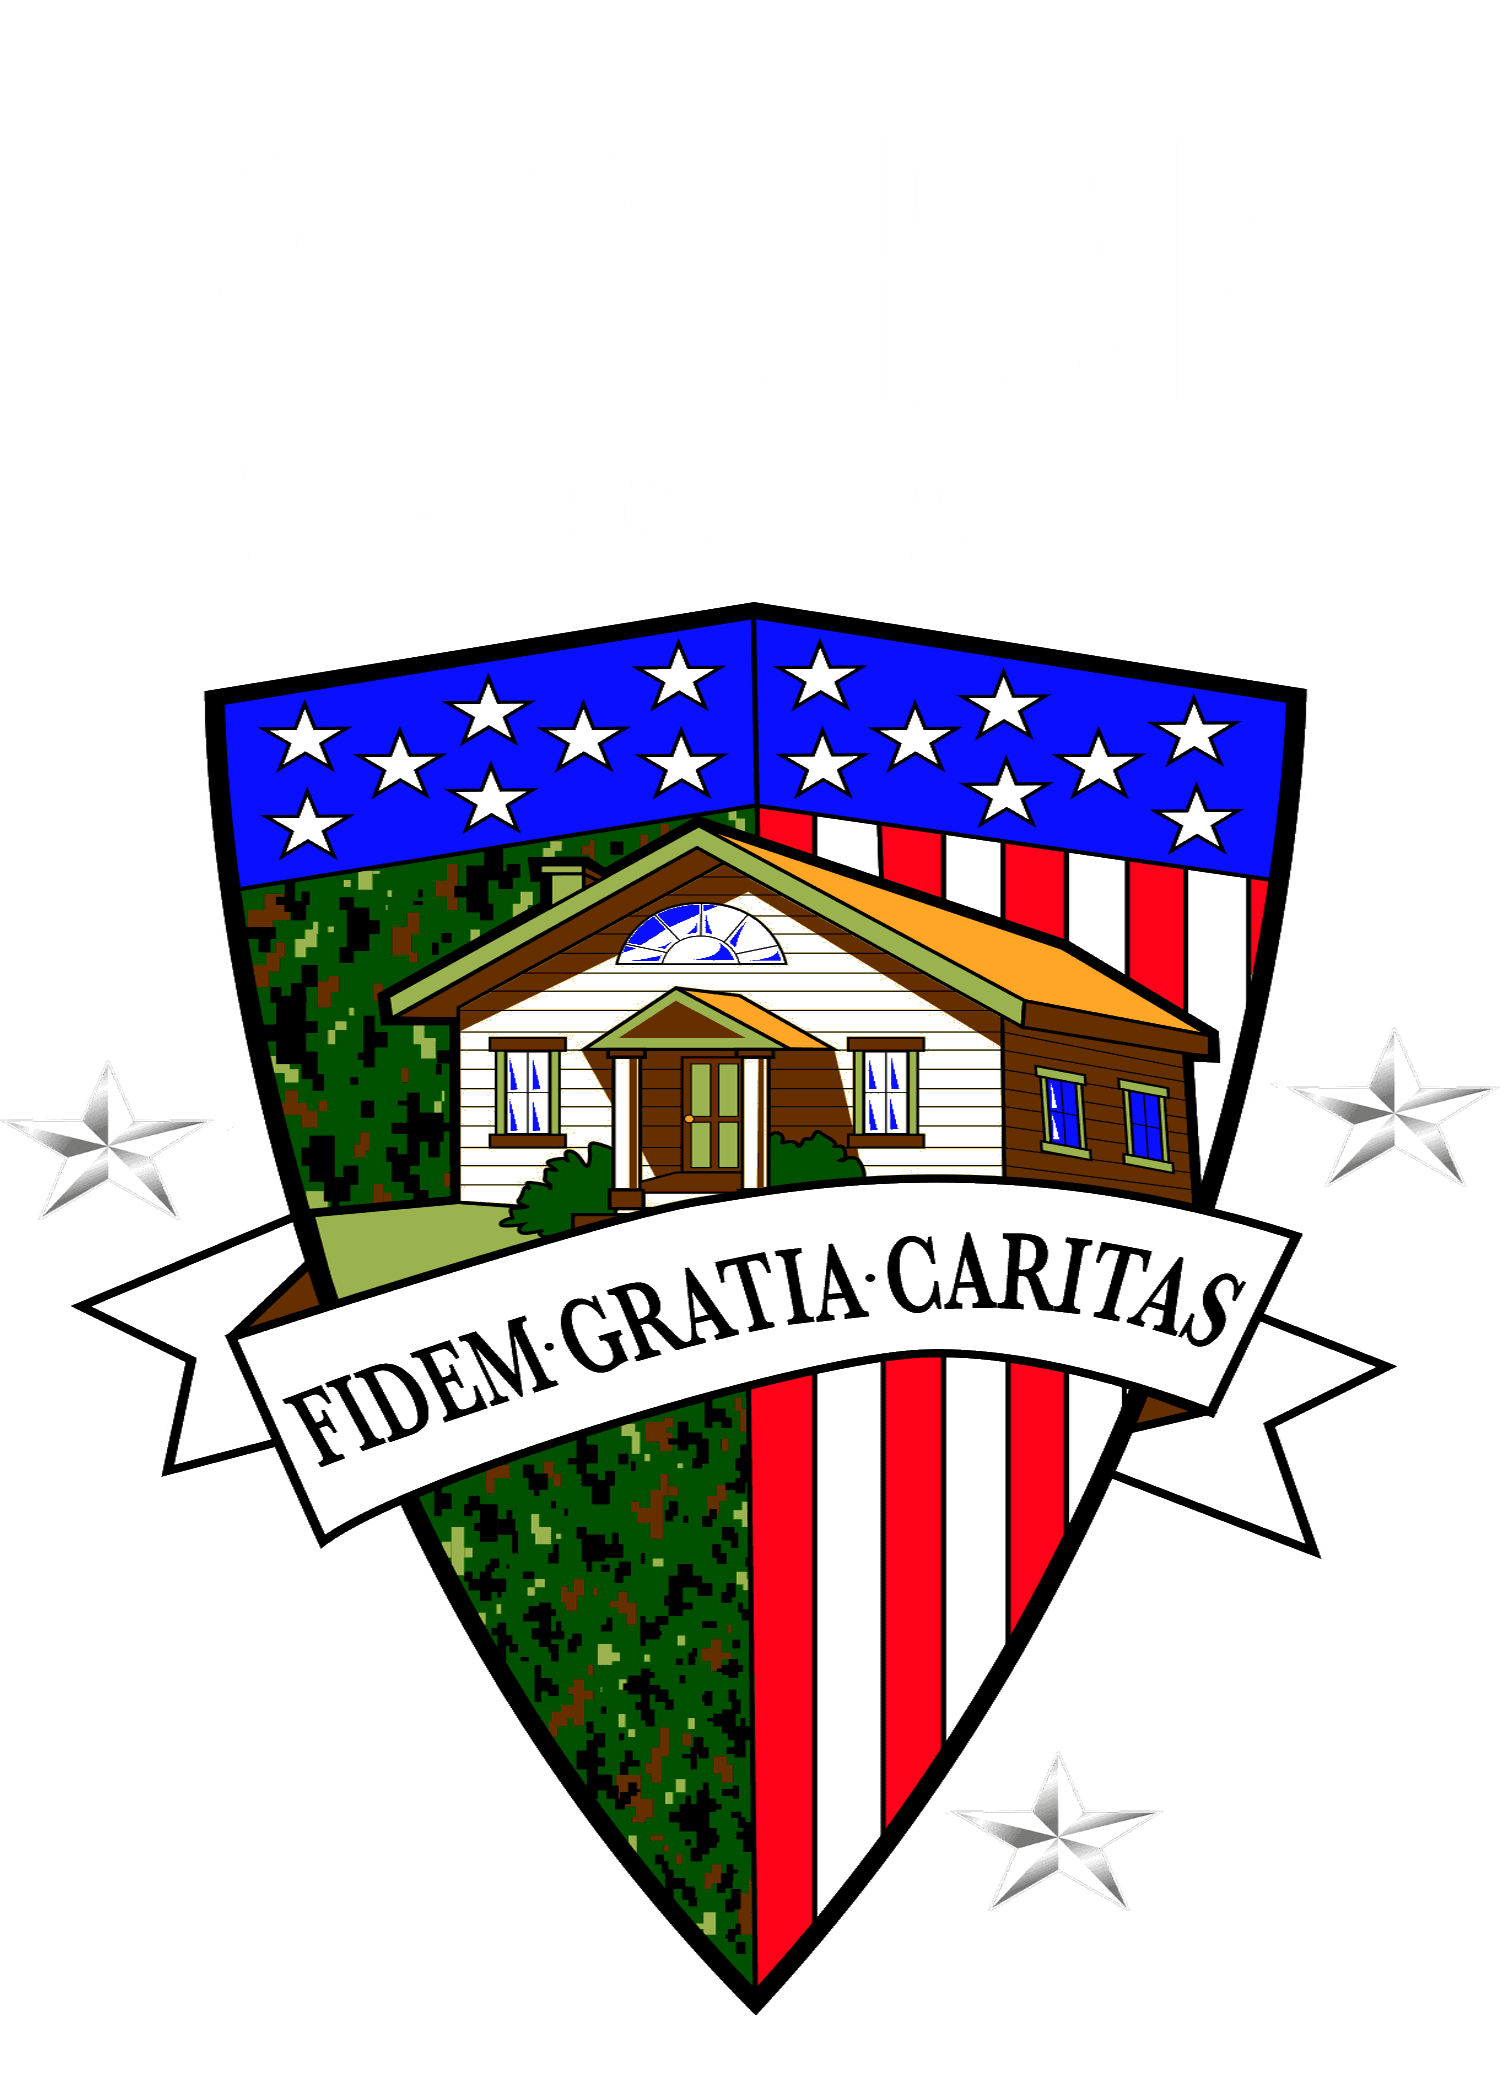 veteran homeowners club logo